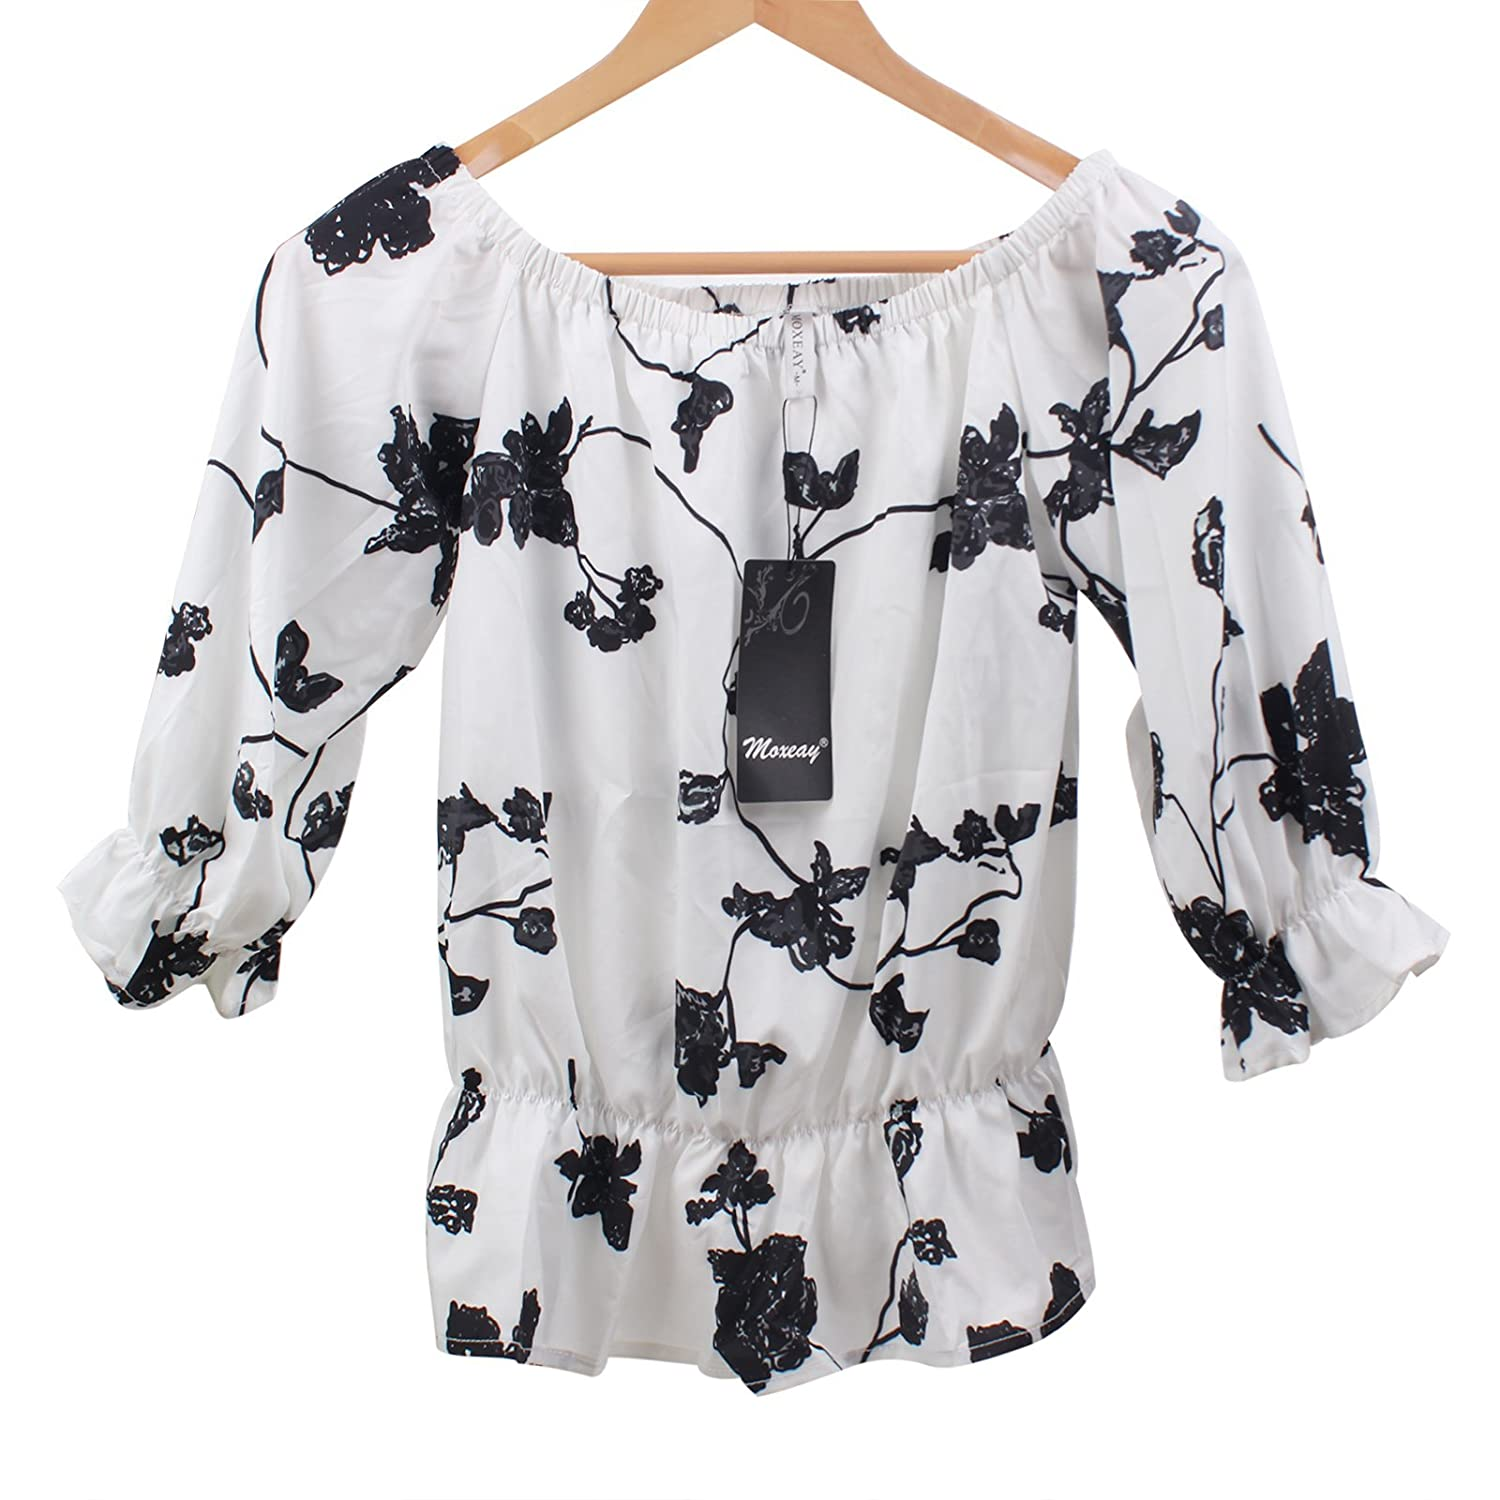 Moxeay Sexy Printed off-shoulder Floral Crop Tops Blouse at Amazon Women's Clothing store